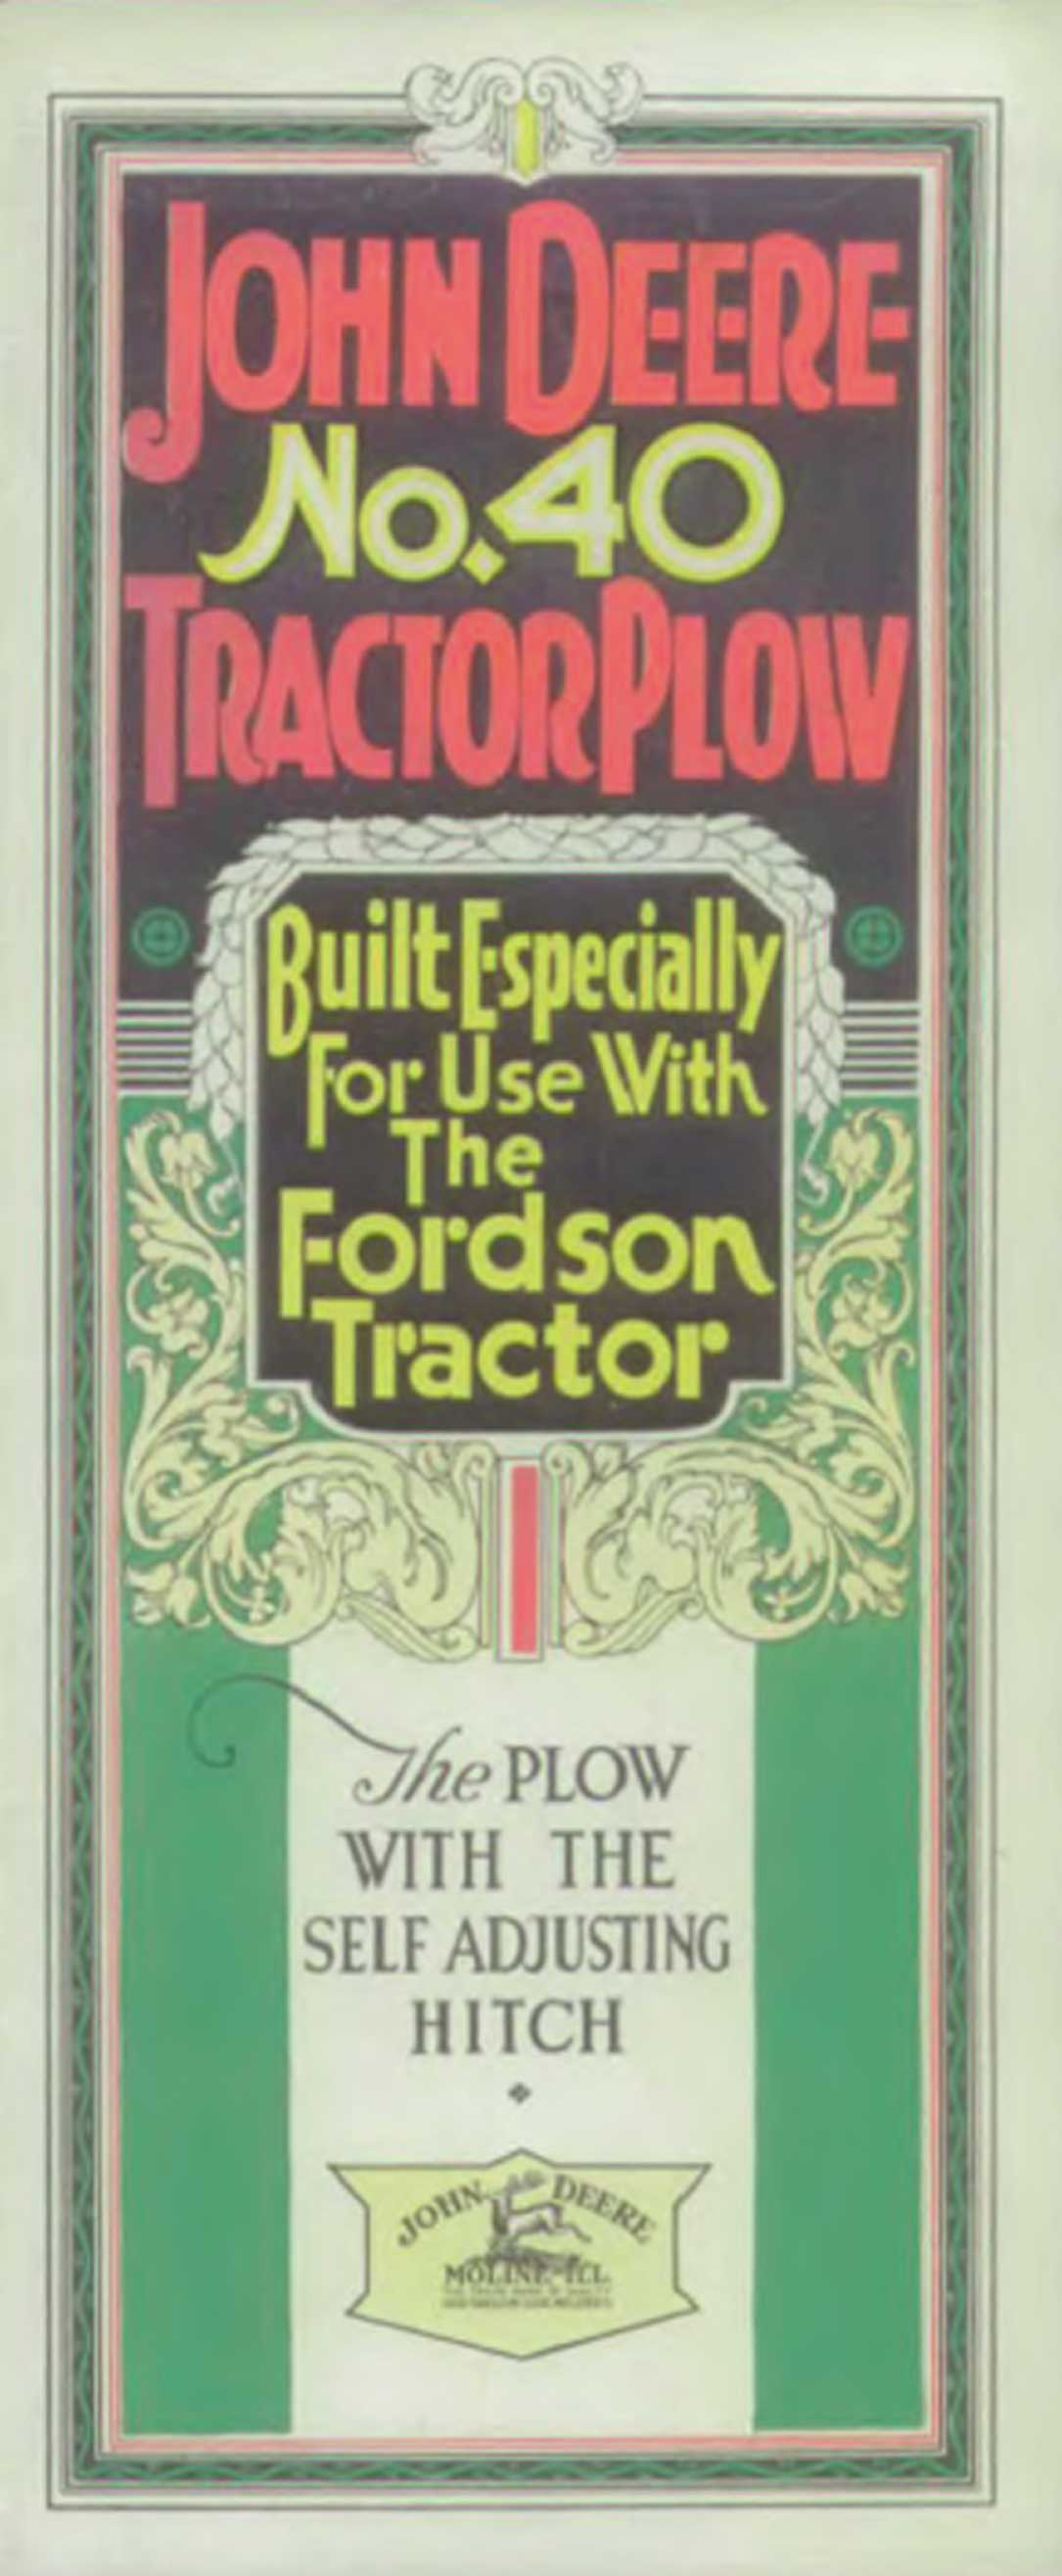 Lessons In The How Deere Visits Henry Ford John Journal 5000 Tractor Electrical Wiring Diagram Produced Plows For Fordson Tractors But Not Exclusively And Limited Numbers